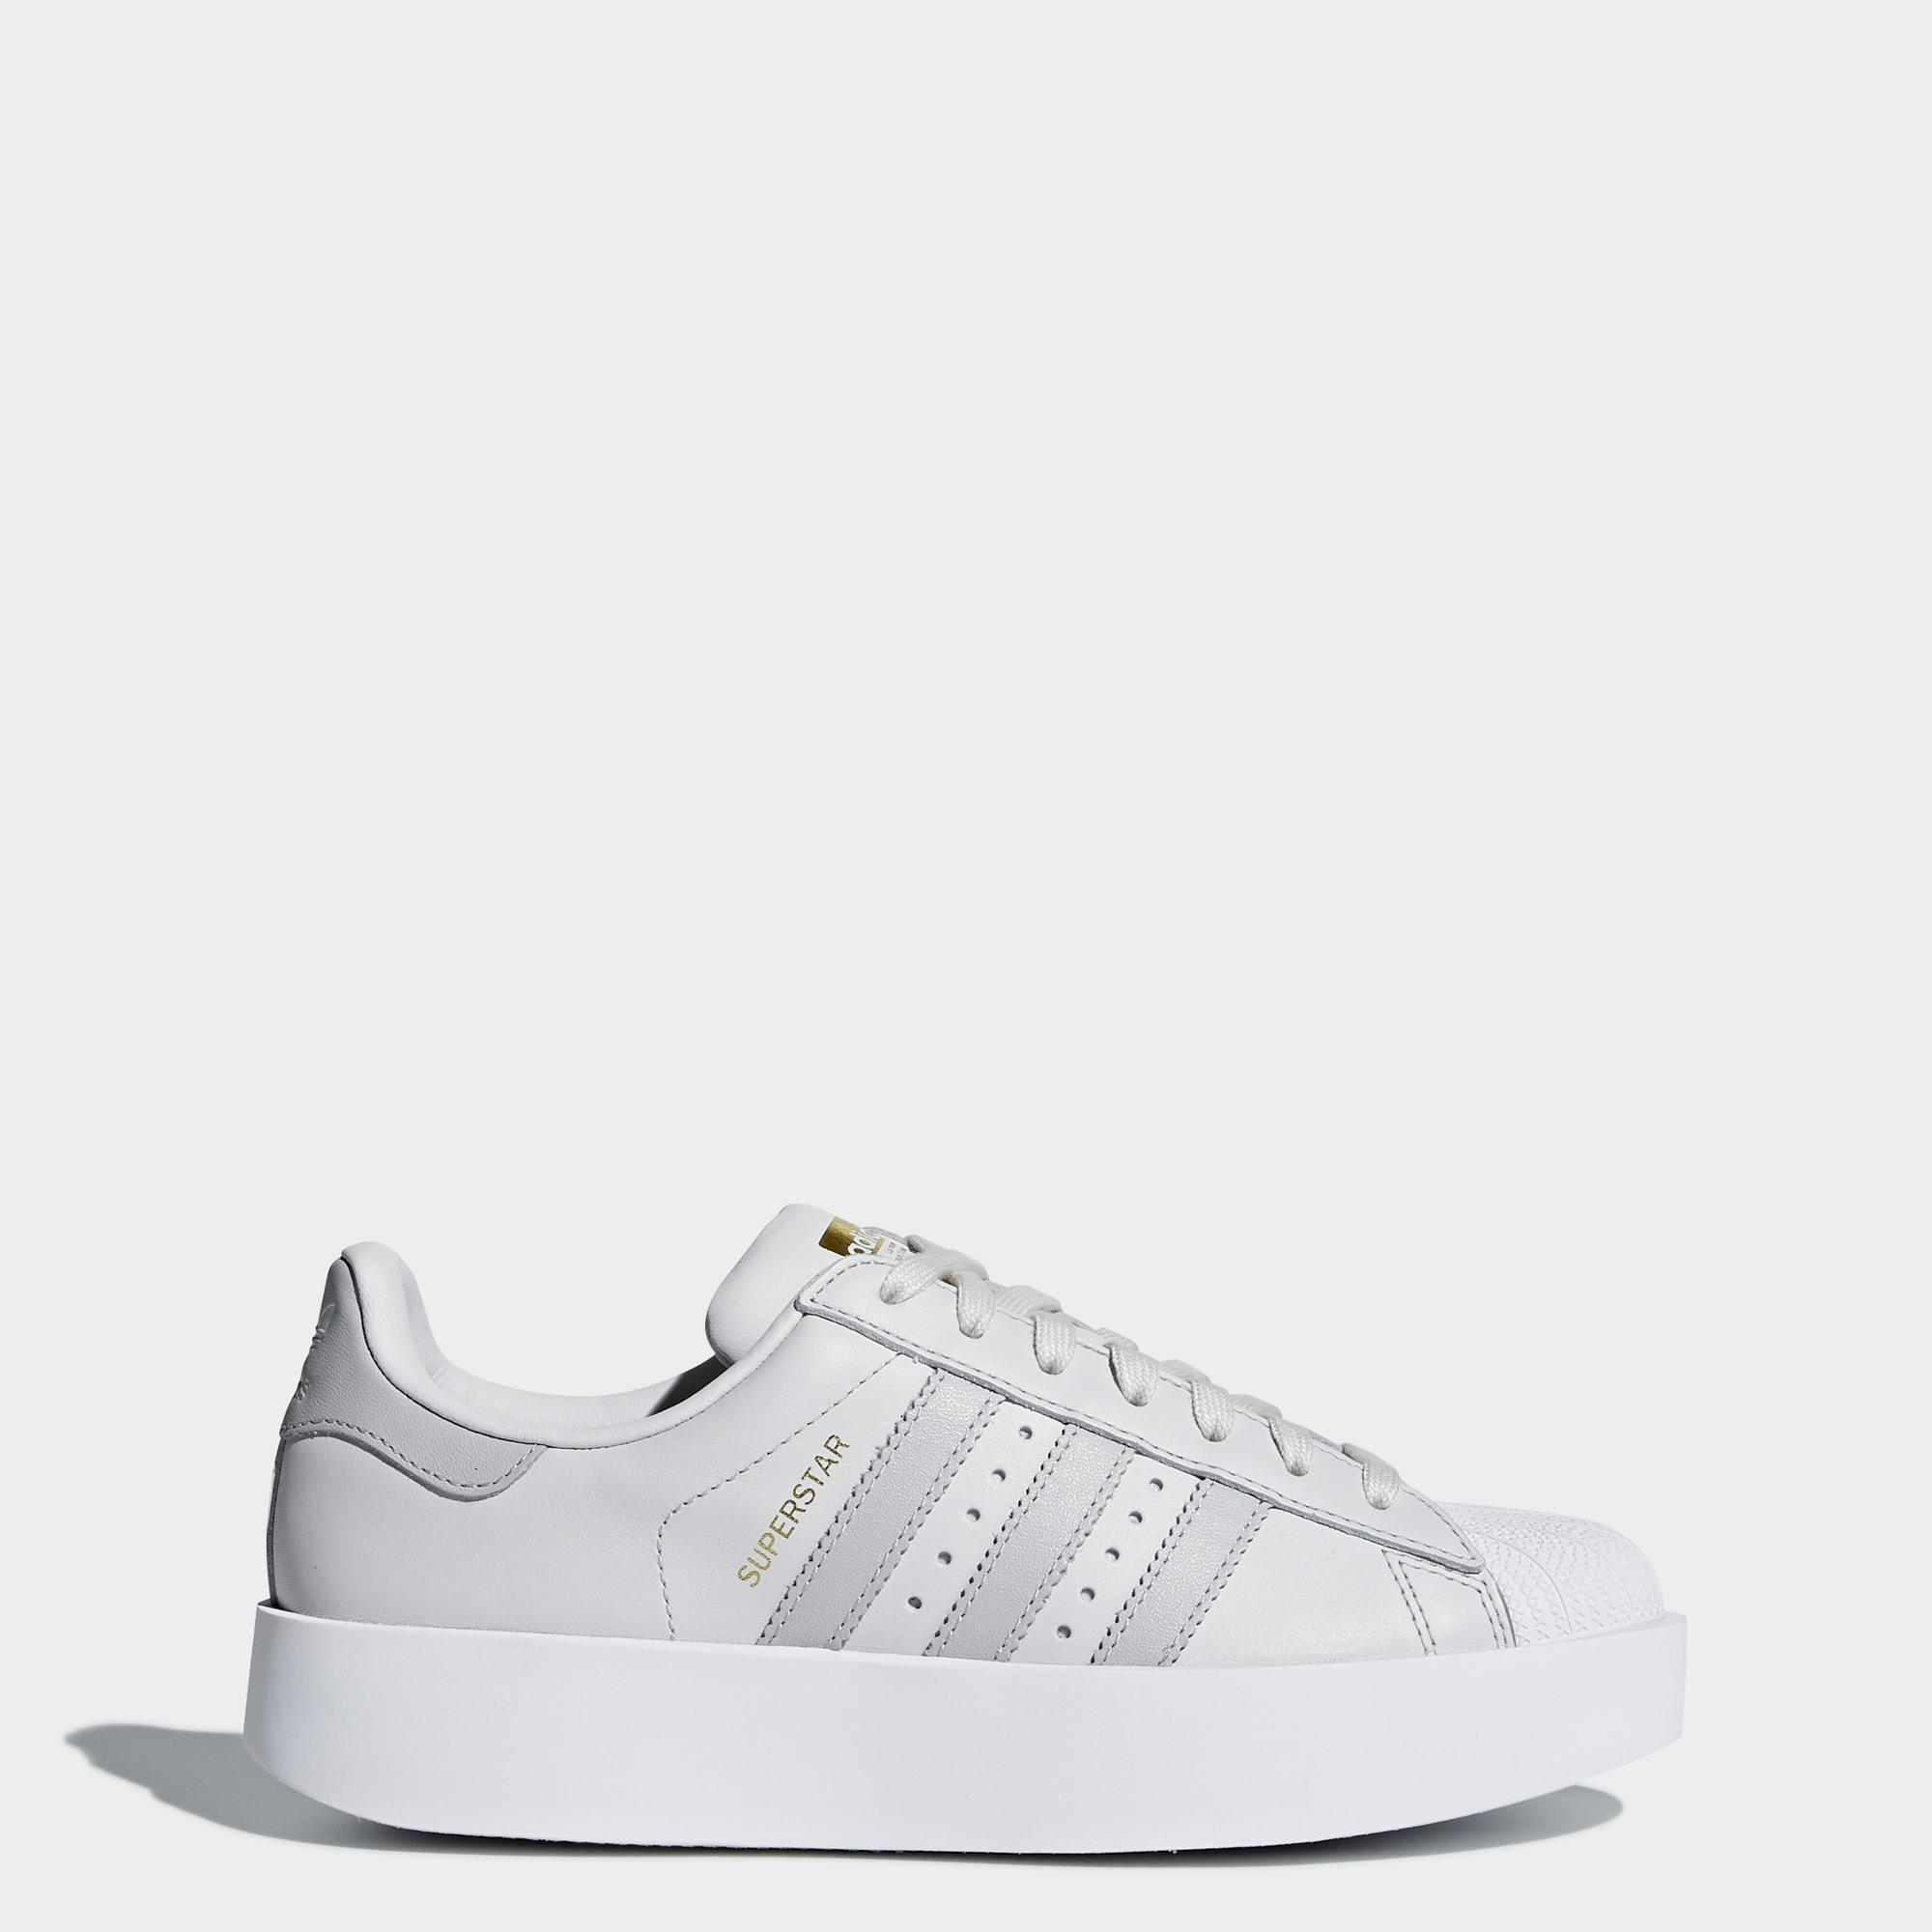 90071aa1619 Adidas Originals Chaussures Superstar Bold Femmes Grey - Tifoshop.com